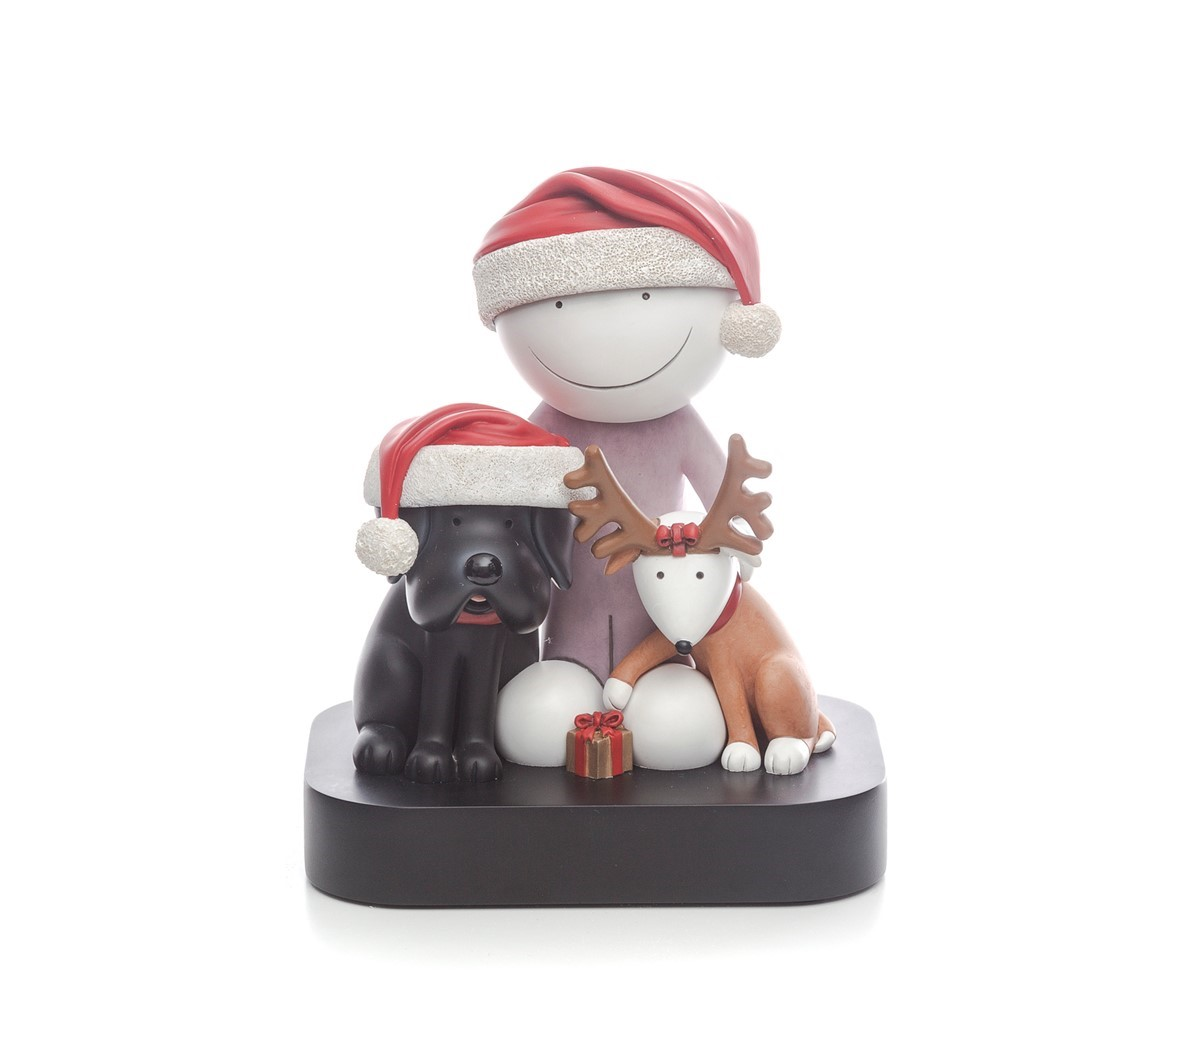 Ho Ho Ho (sculpture) by Doug Hyde